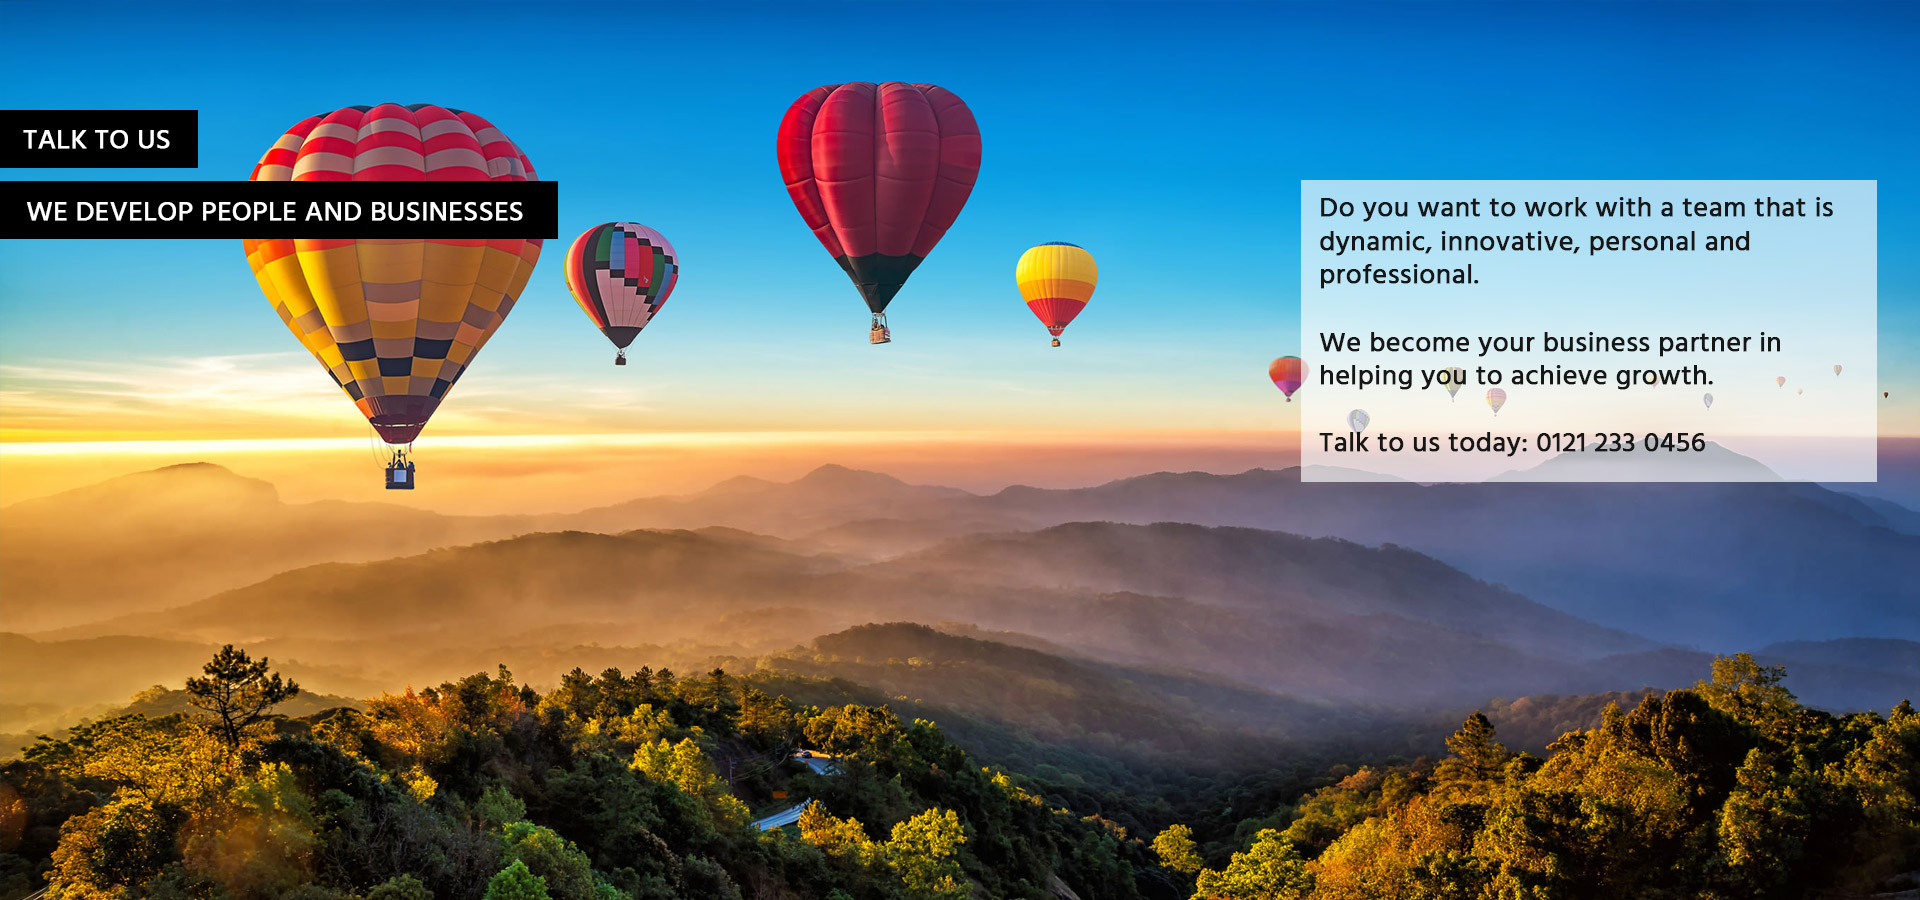 talk to us - tax advisor - hot air balloons